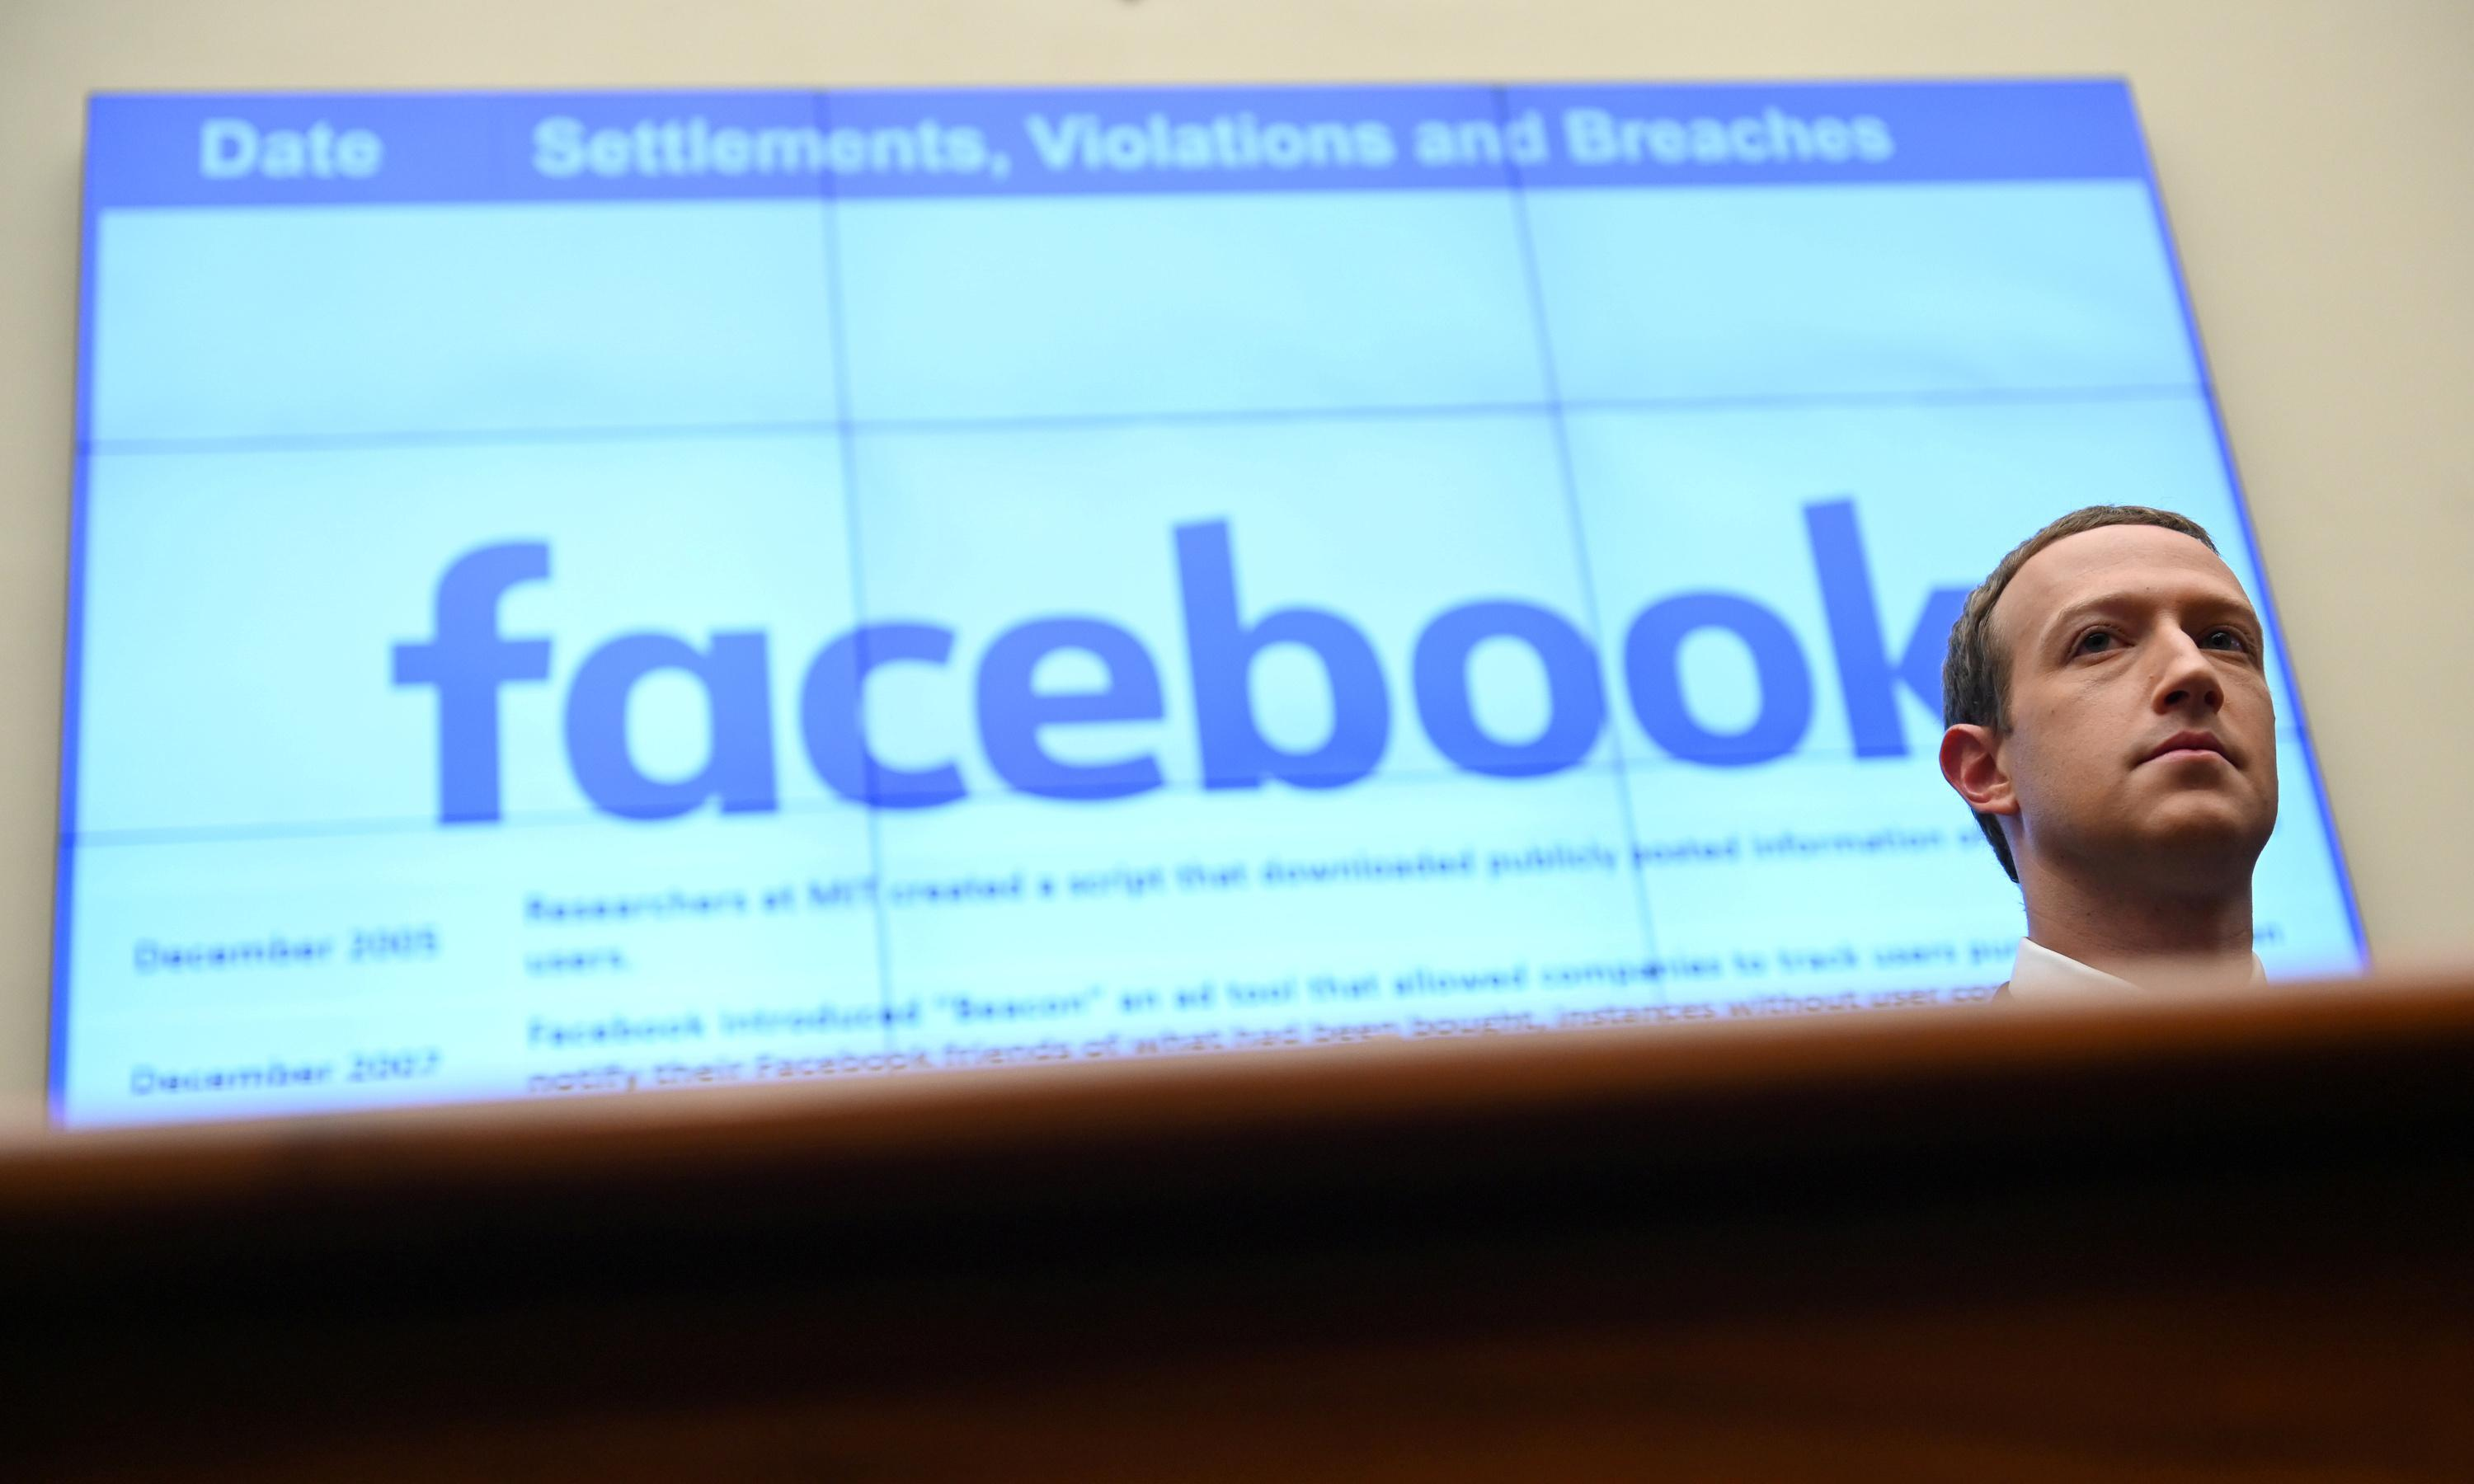 Australian politicians call for Facebook's Mark Zuckerberg to appear before inquiry